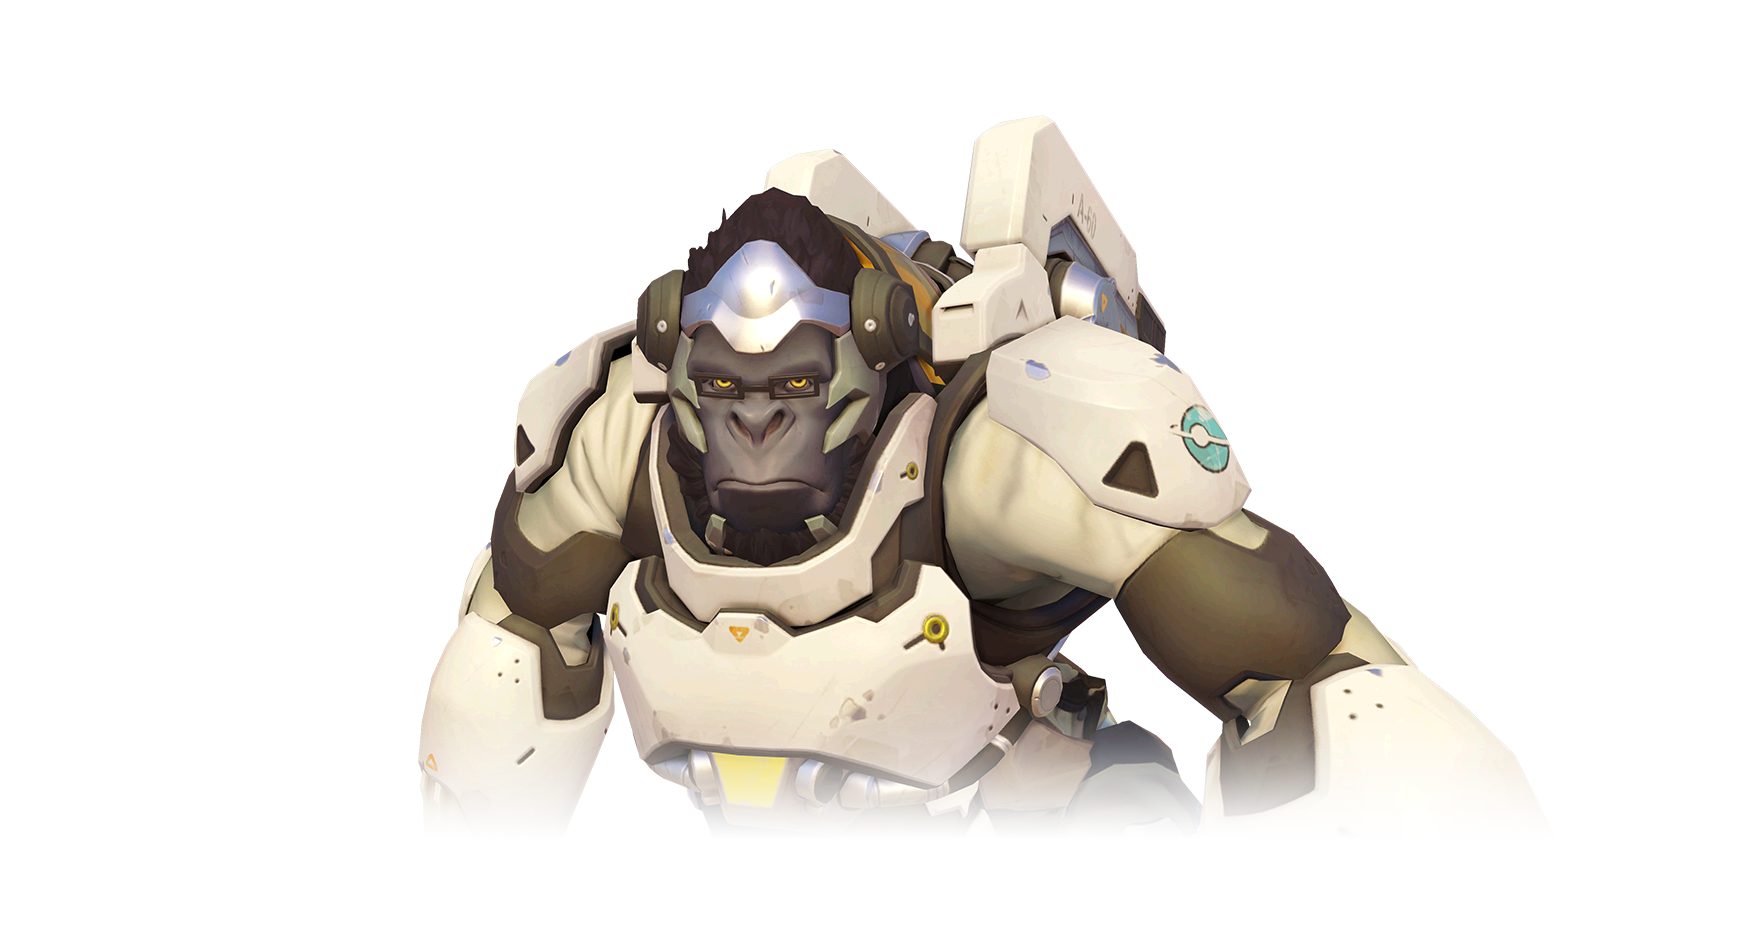 winston overwatch video guide tips